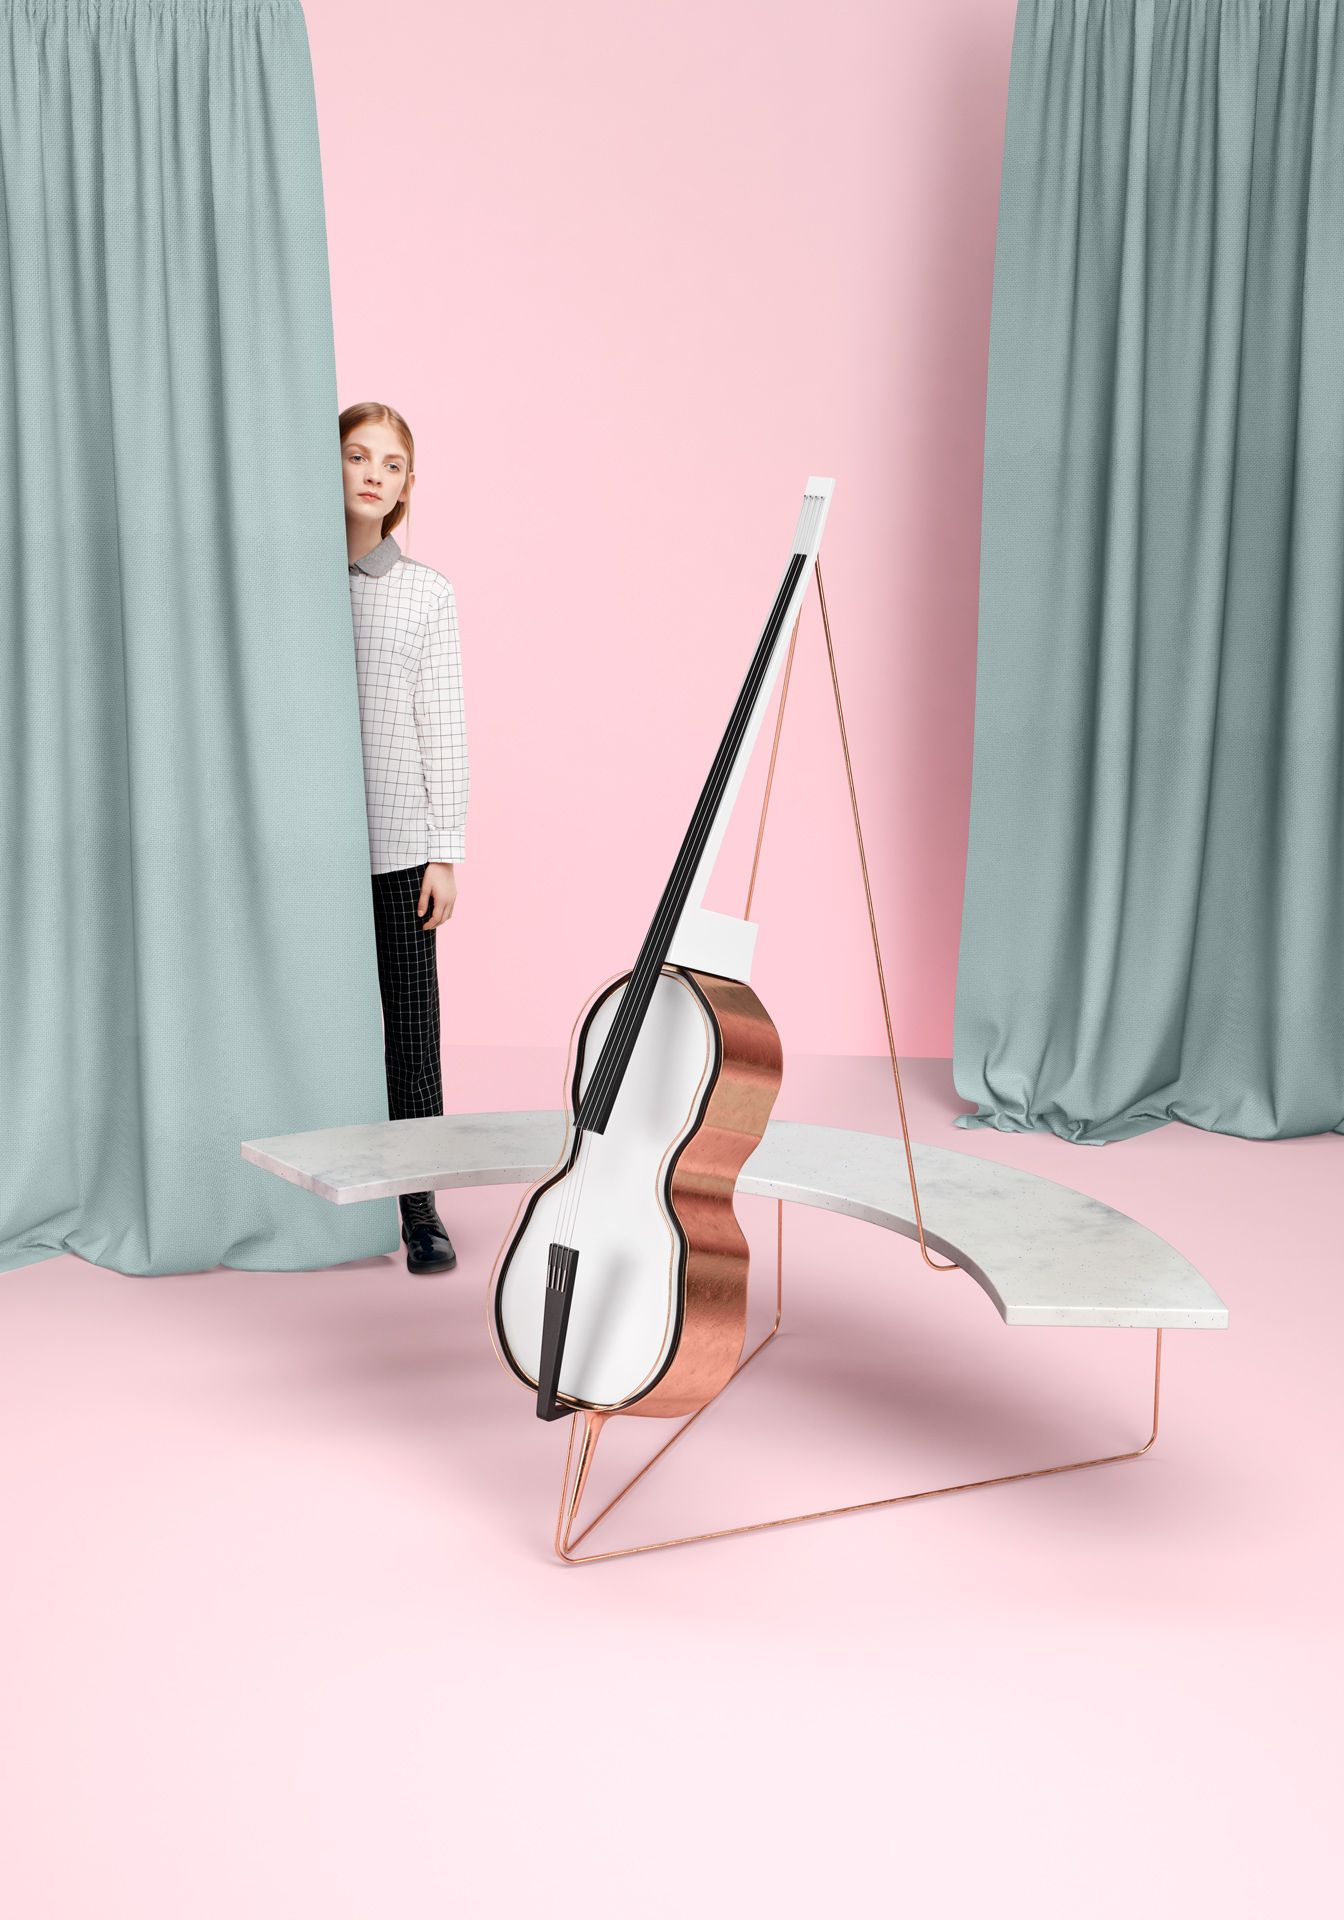 marble and copper futuristic cello in foreground young blonde girl hiding behind dark turquoise curtains pink background by Simon Duhamel for Bloom Maestro